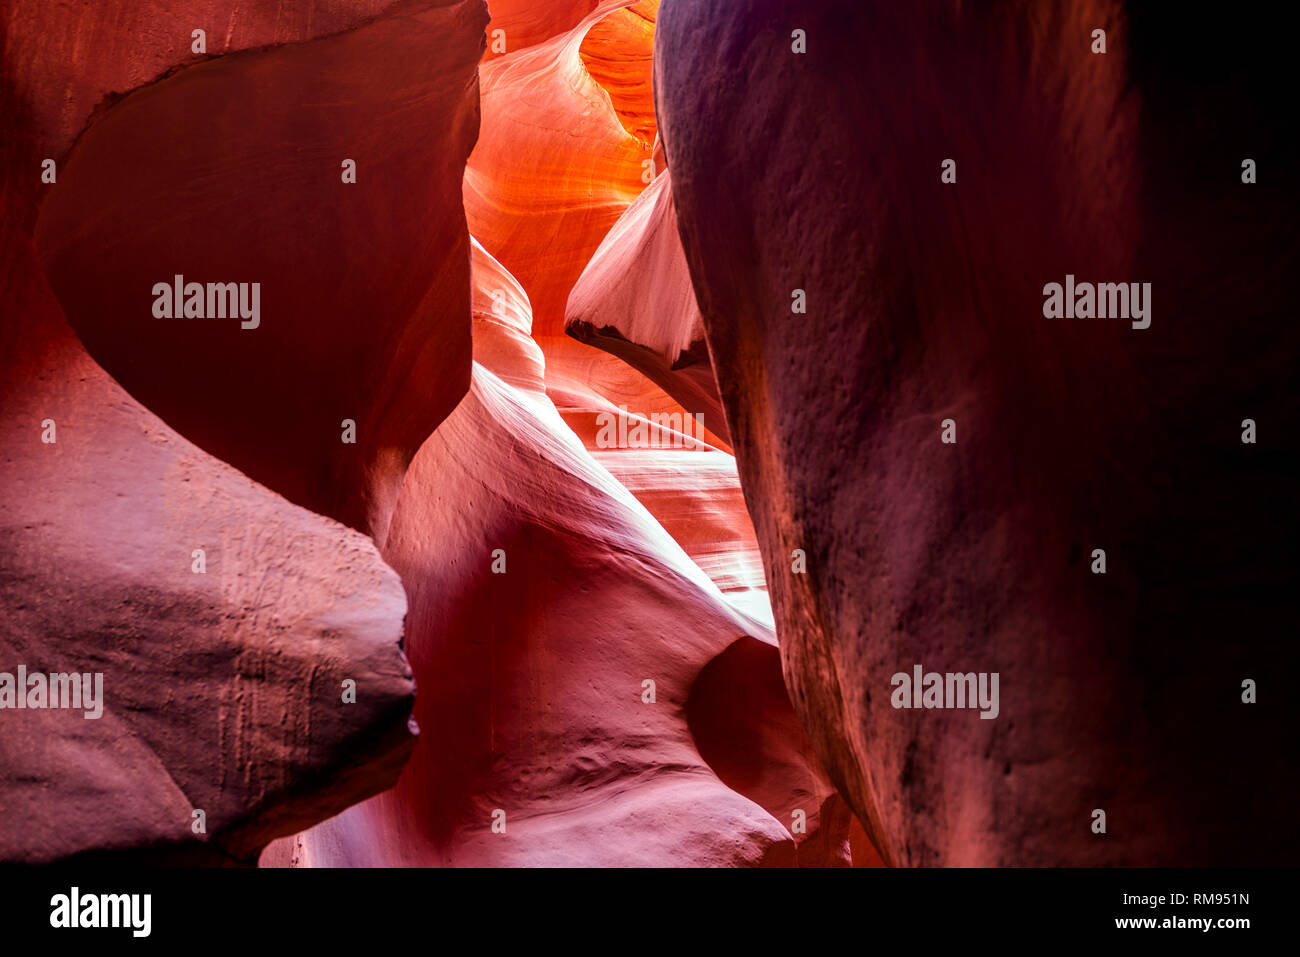 Abstract artistic waves of the colorful sandstone labyrinths of the slot Lower Antelope Canyon in Page city limit Arizona ignite the imagination of th - Stock Image